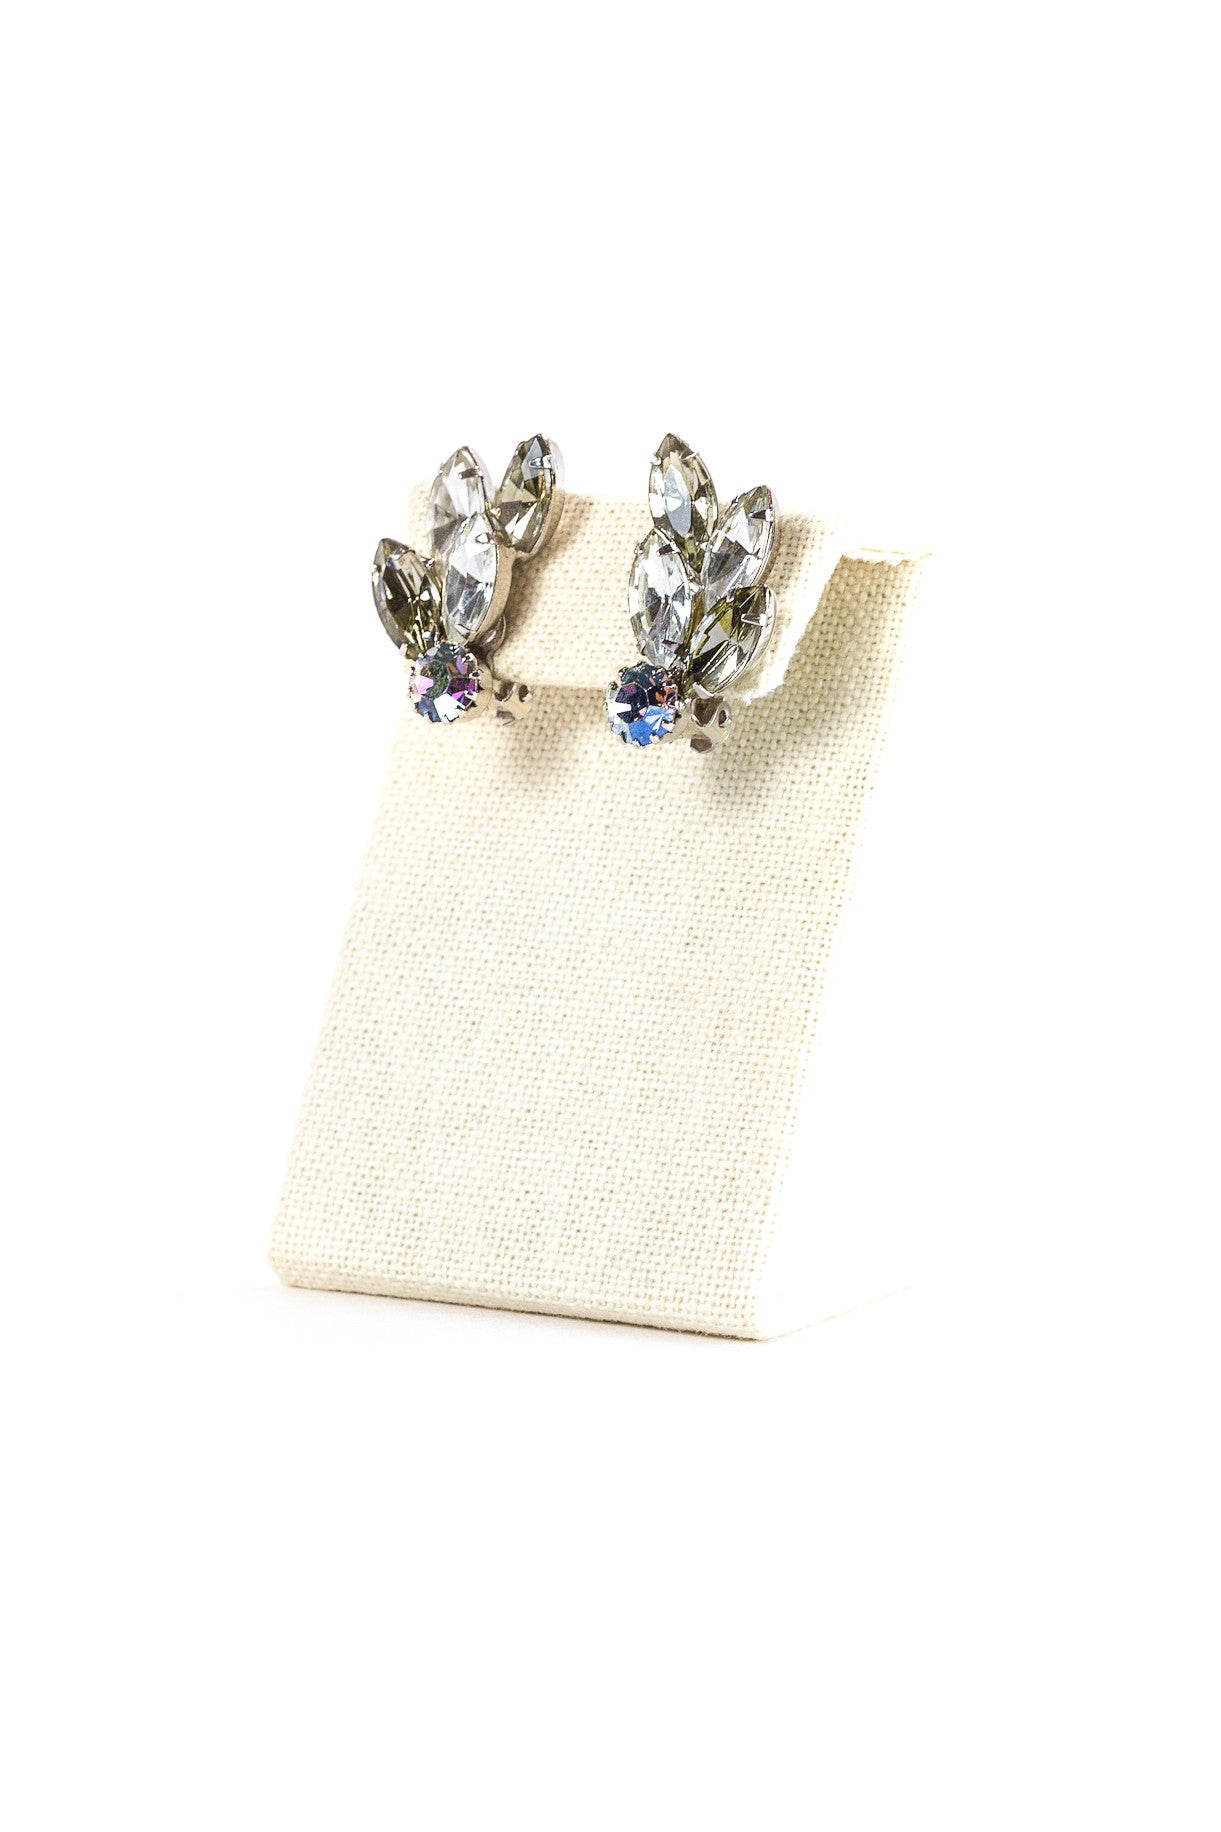 60's__Vintage__Irredescent Rhinestone Clips